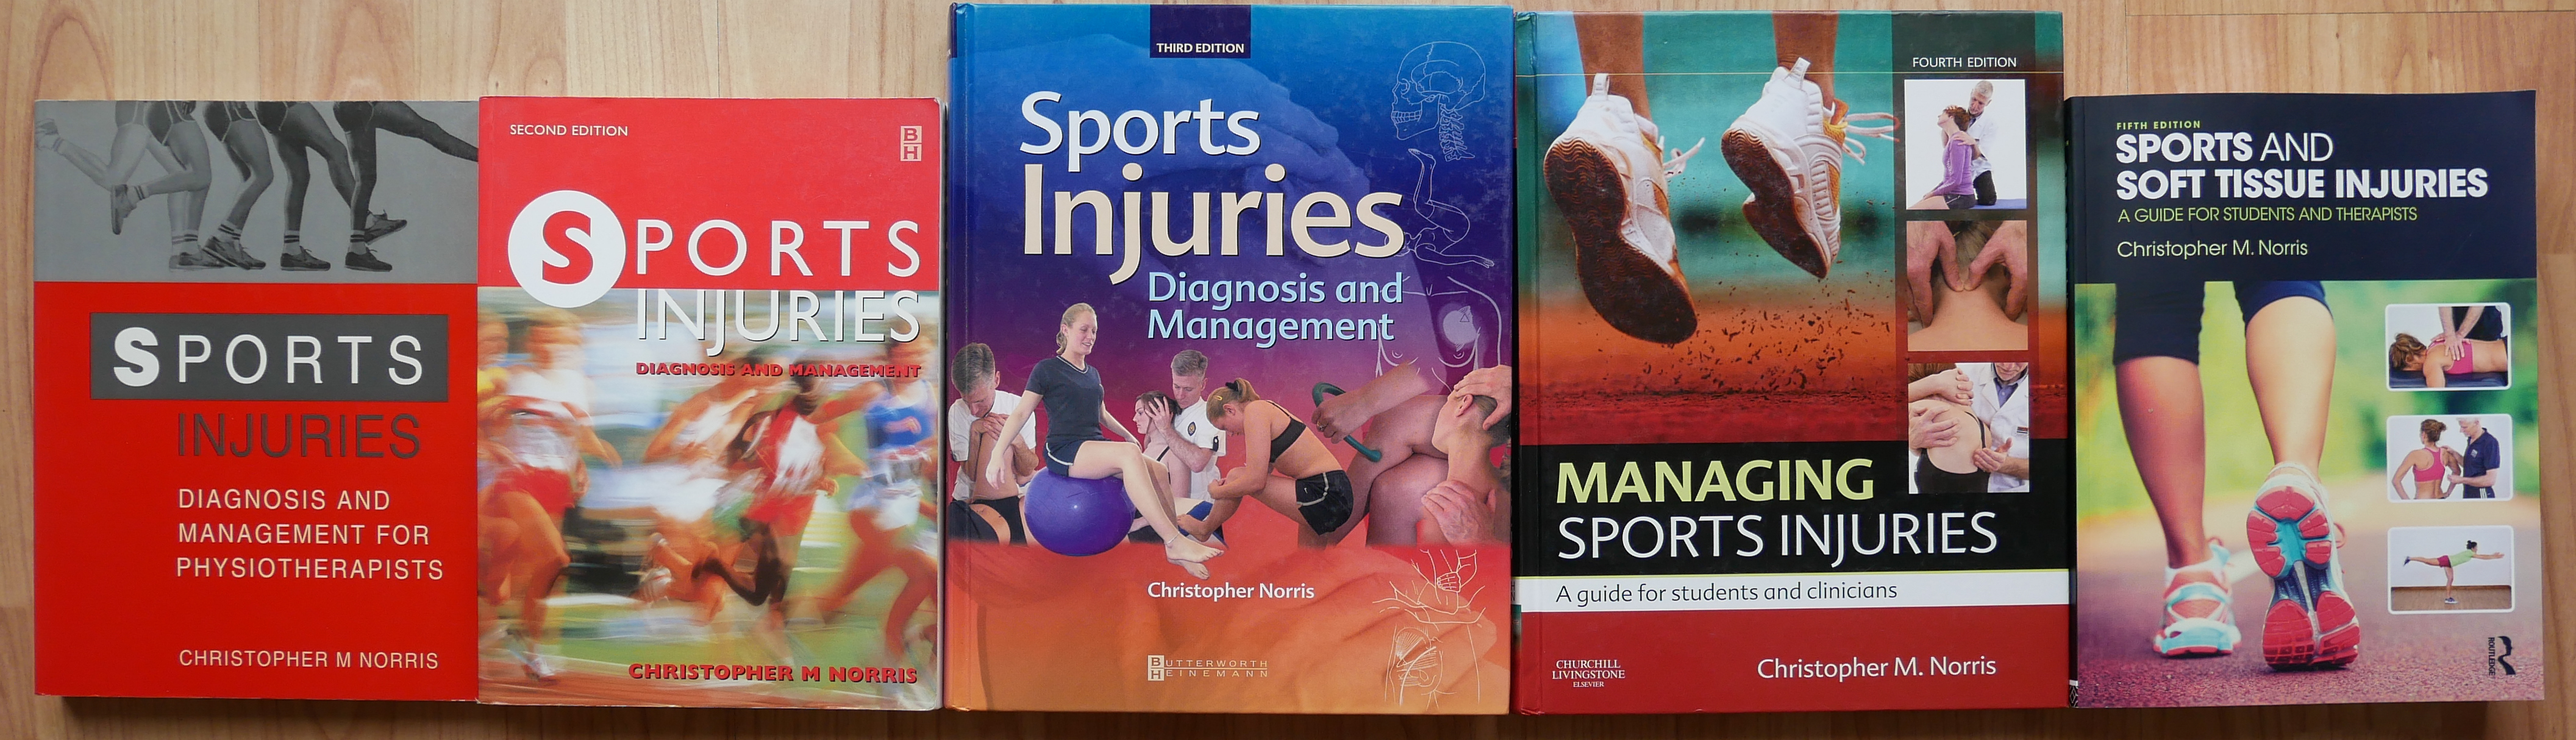 Sports & Soft Tissue Injuries - different editions